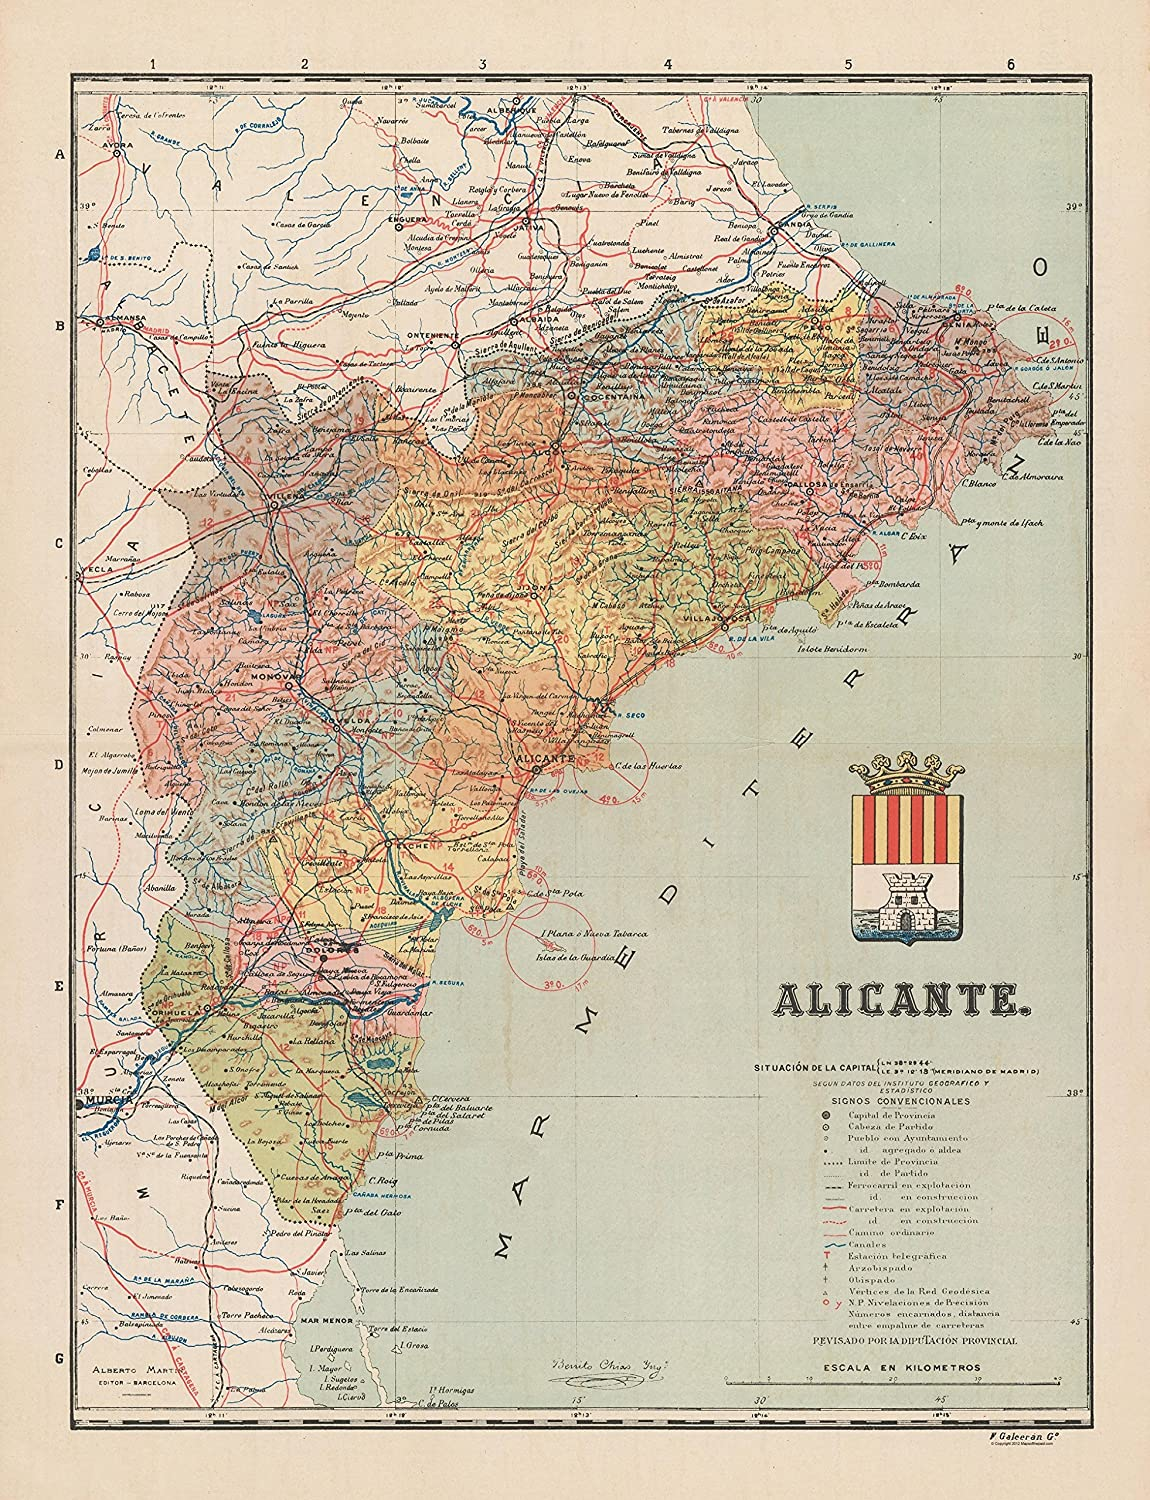 Amazon.com: MAPS OF THE PAST Europe Alicante - Martin 1900 ...